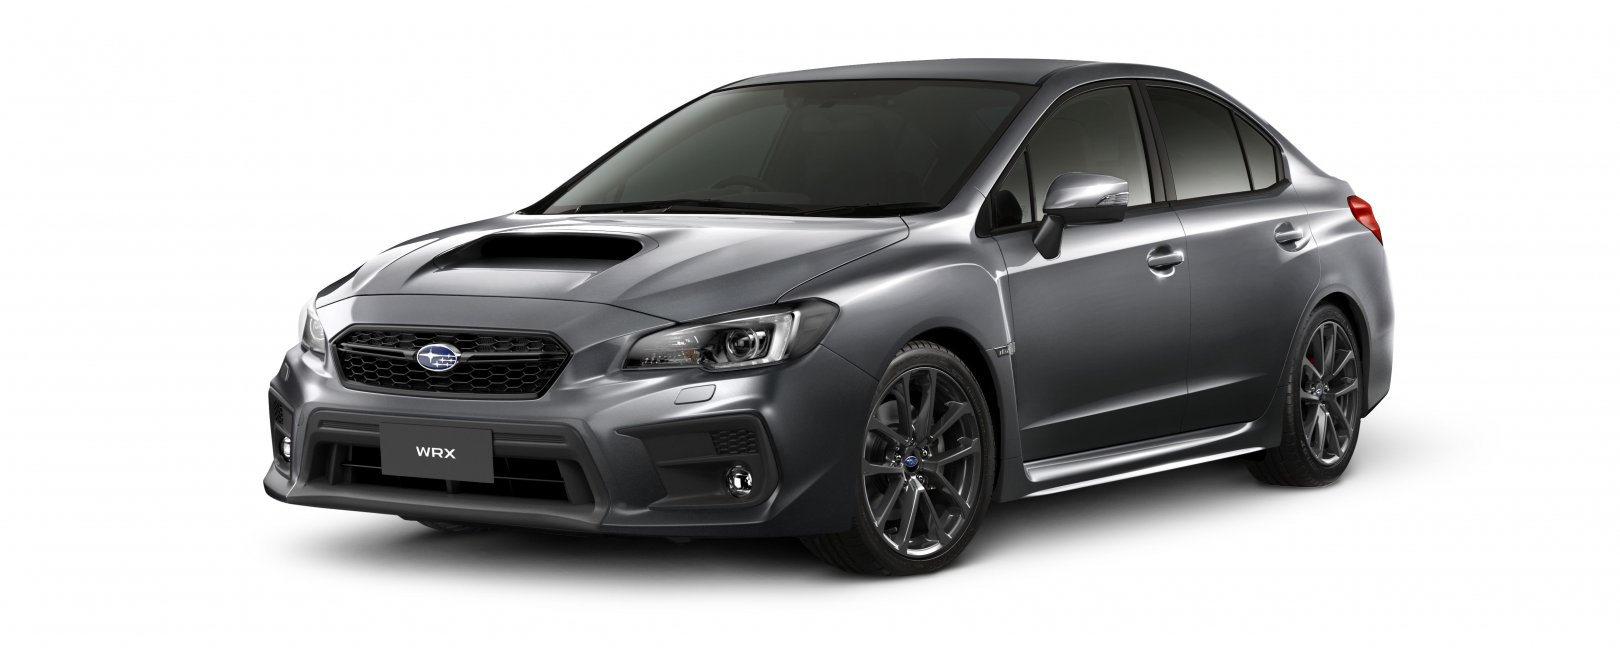 2020 WRX in dark grey